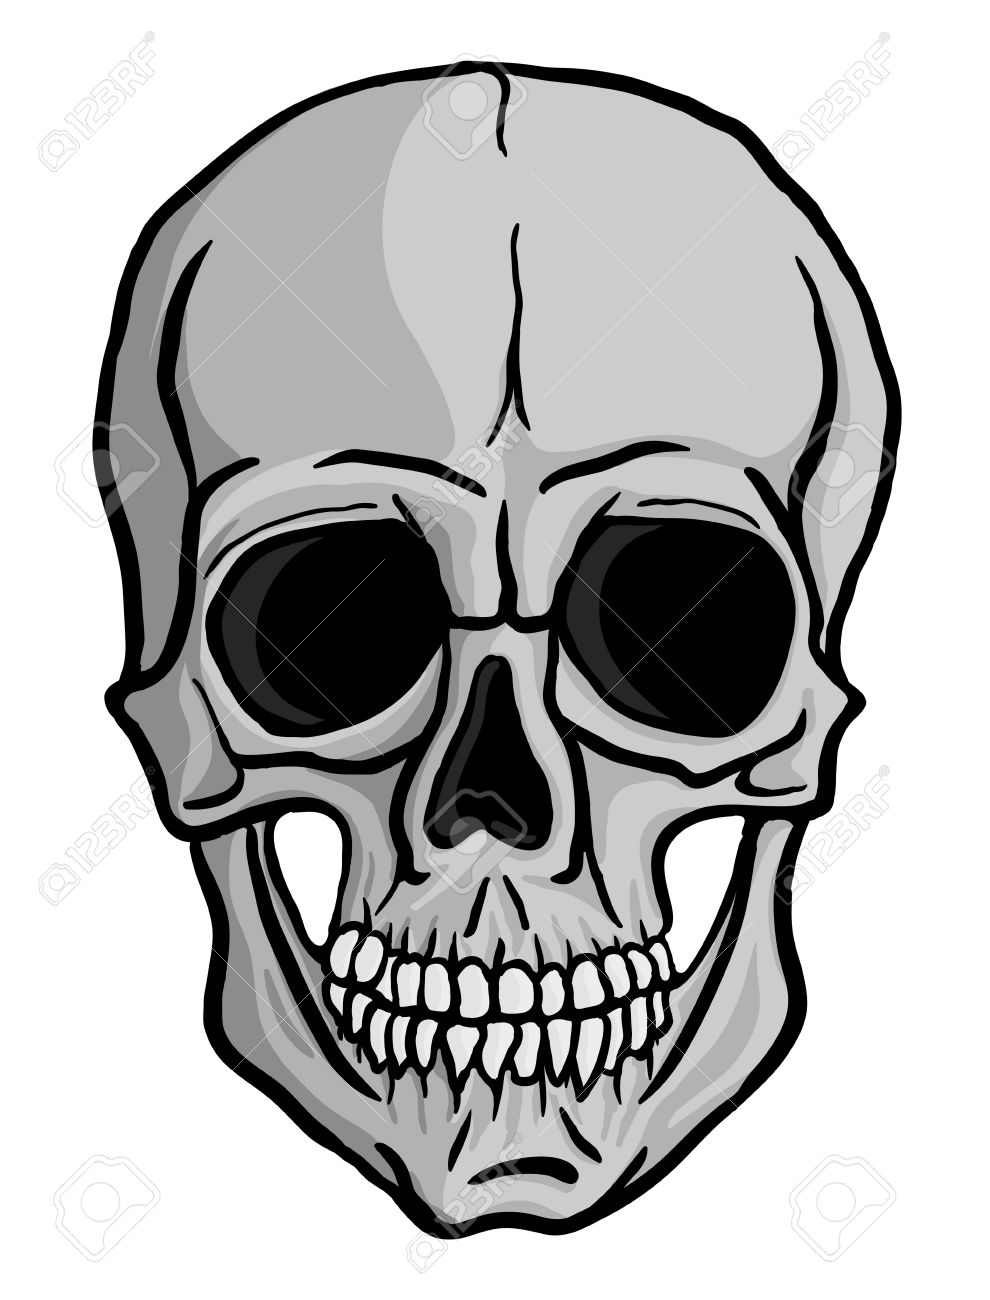 990x1300 Human Skull Isolated On White Freehand Drawing Royalty Free